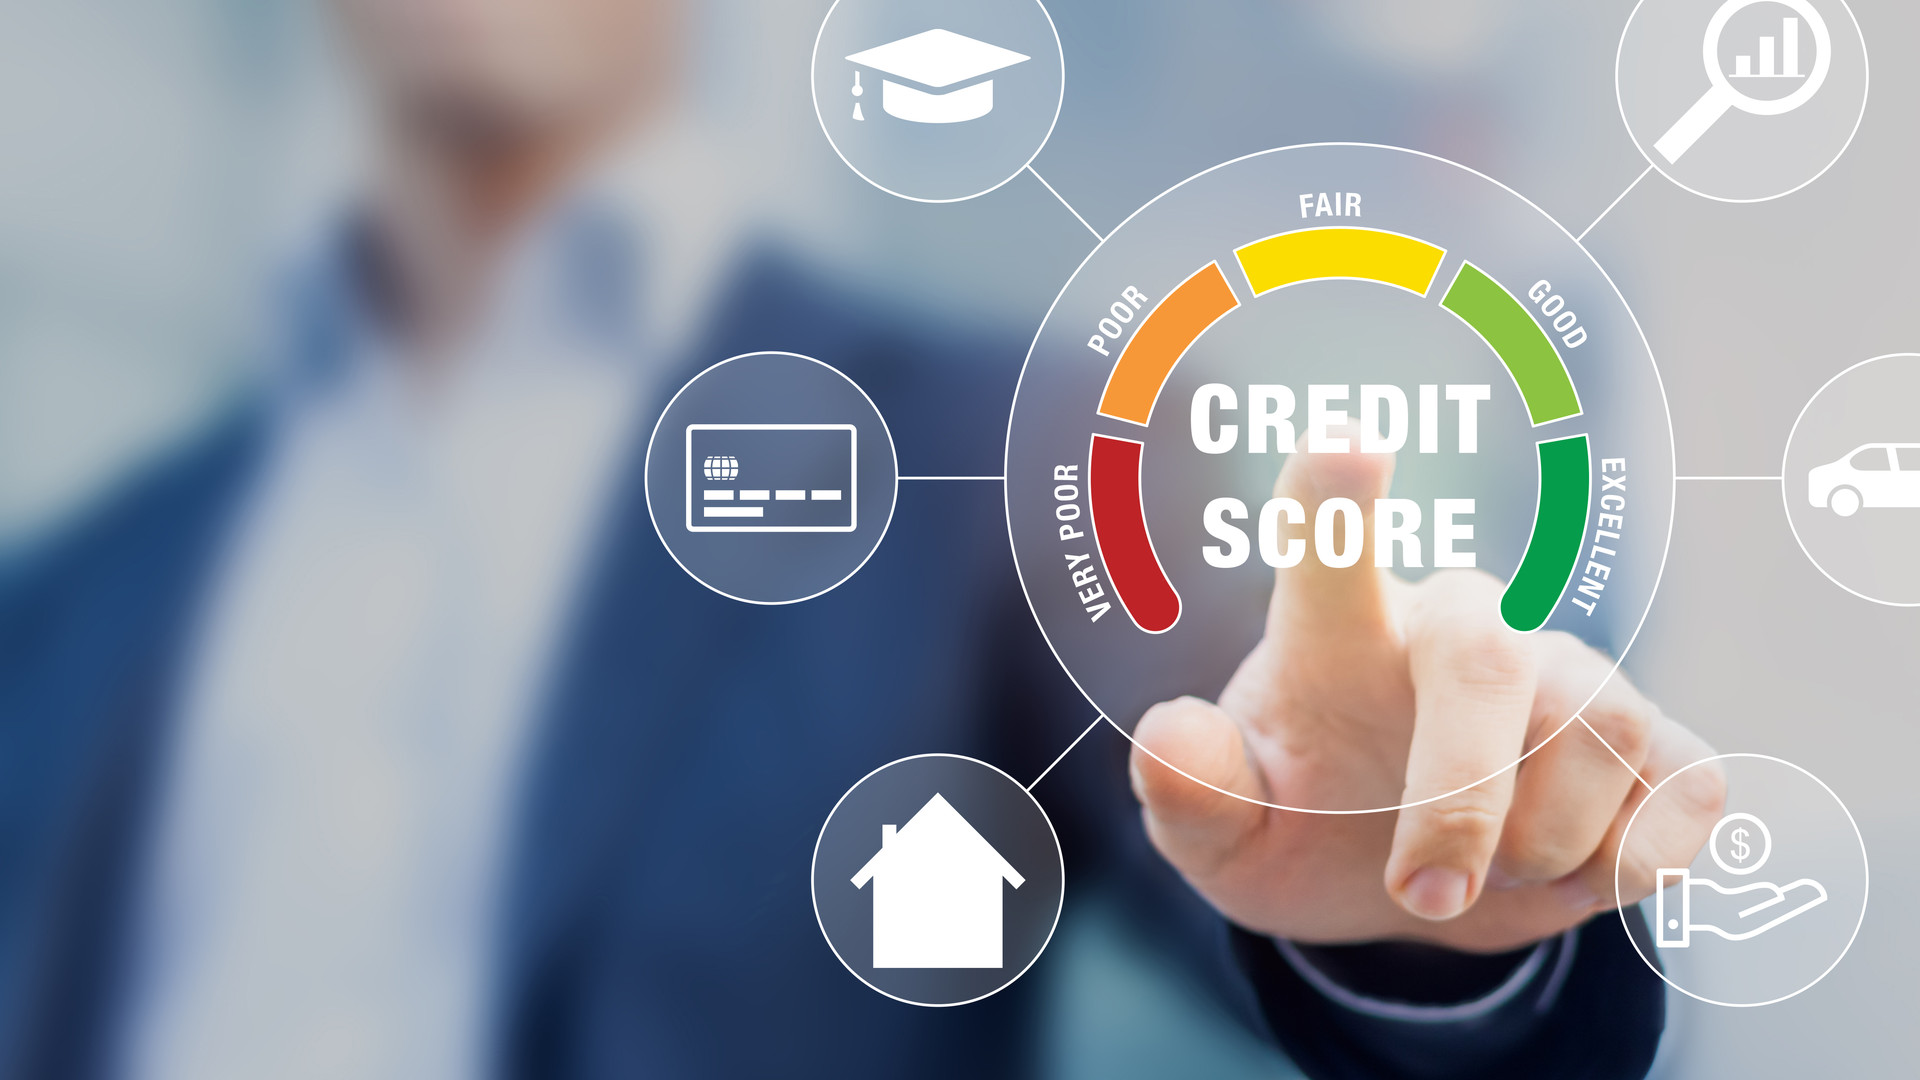 Credit Score rating based on debt reports showing creditworthiness or risk of individuals for student loan, mortgage and payment cards, concept with business person touching scorecard on screen